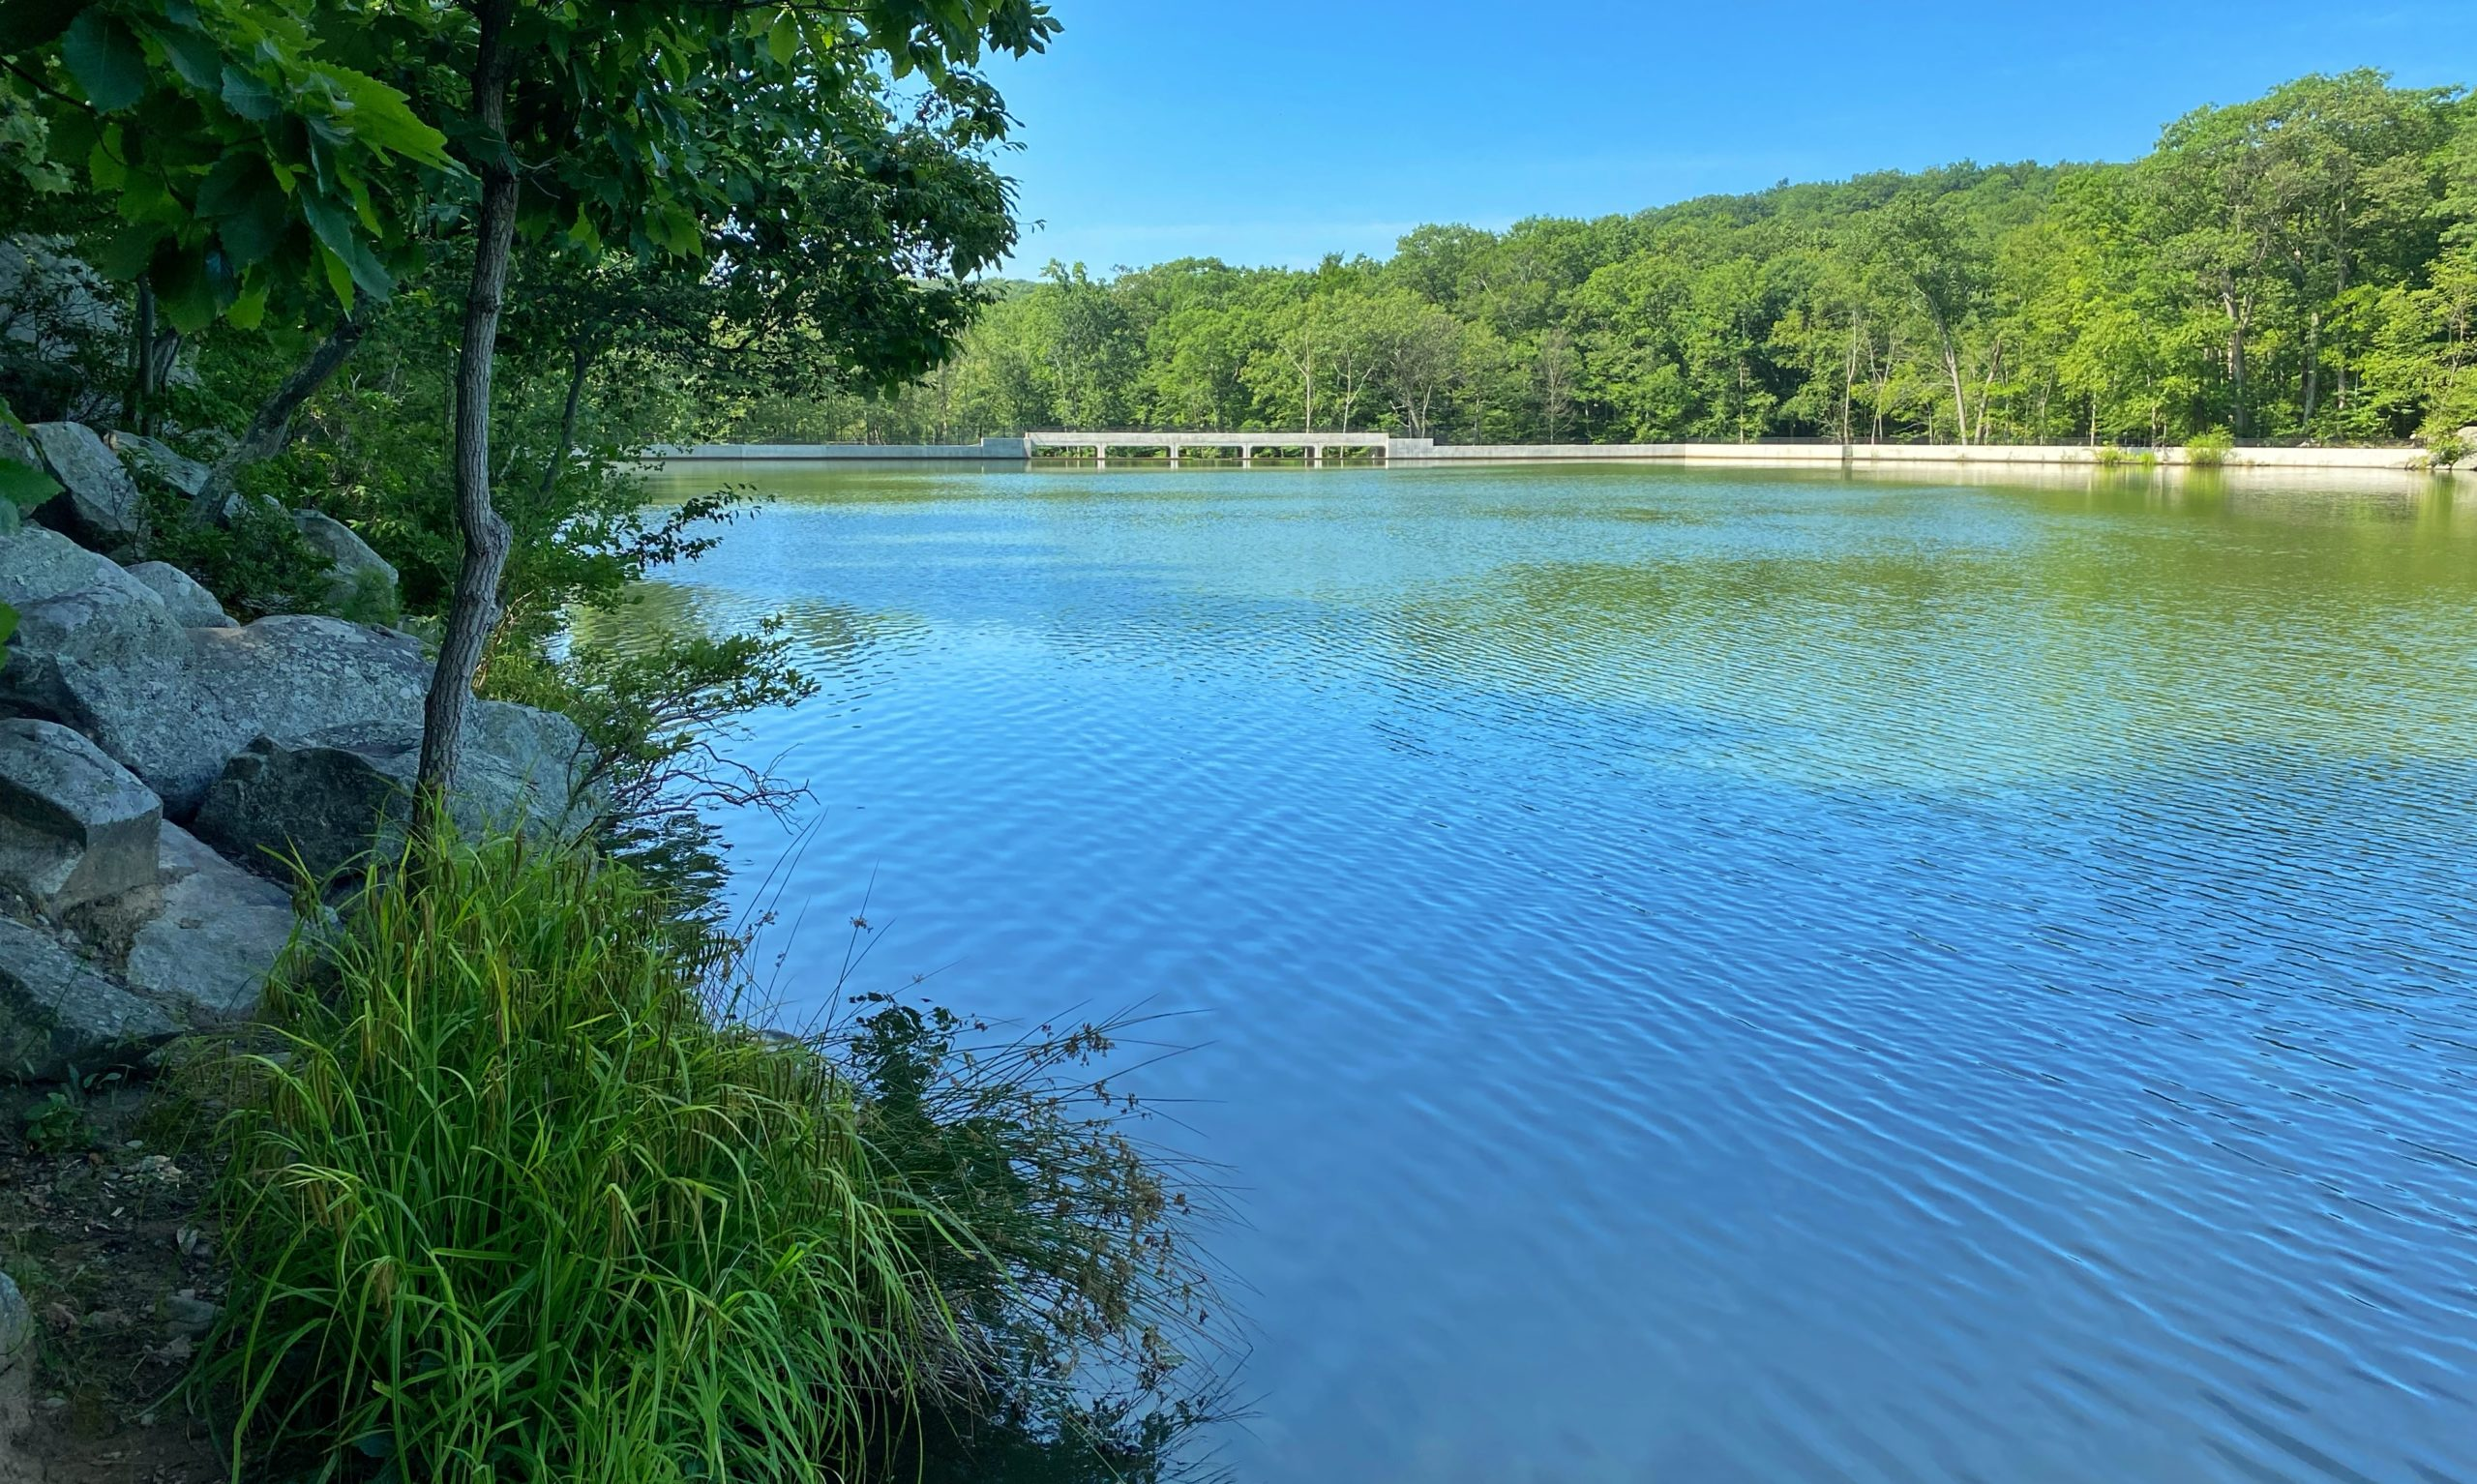 View of Canty's Lake in Silas Condict County Park